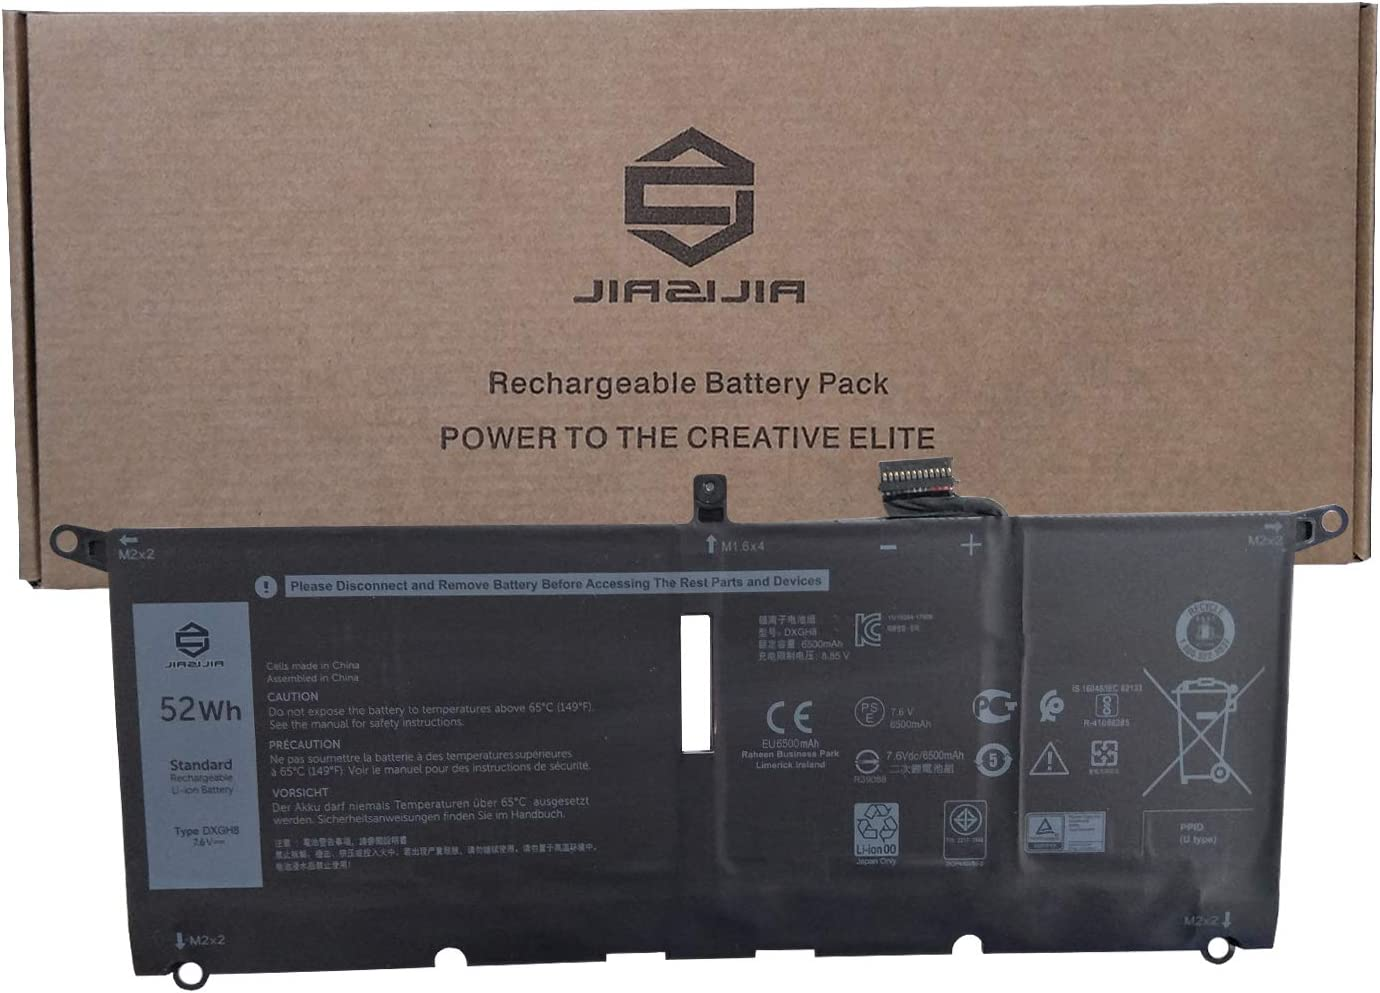 JIAZIJIA DXGH8 Laptop Battery Replacement for Dell XPS 9370 9380 7390 Inspiron 5390 5391 7490 Latitude 3301 E3301 Vostro 5390 5391 Series Notebook 0H754V H754V 0V48RM V48RM HK6N5 7.6V 52Wh 6500mAh